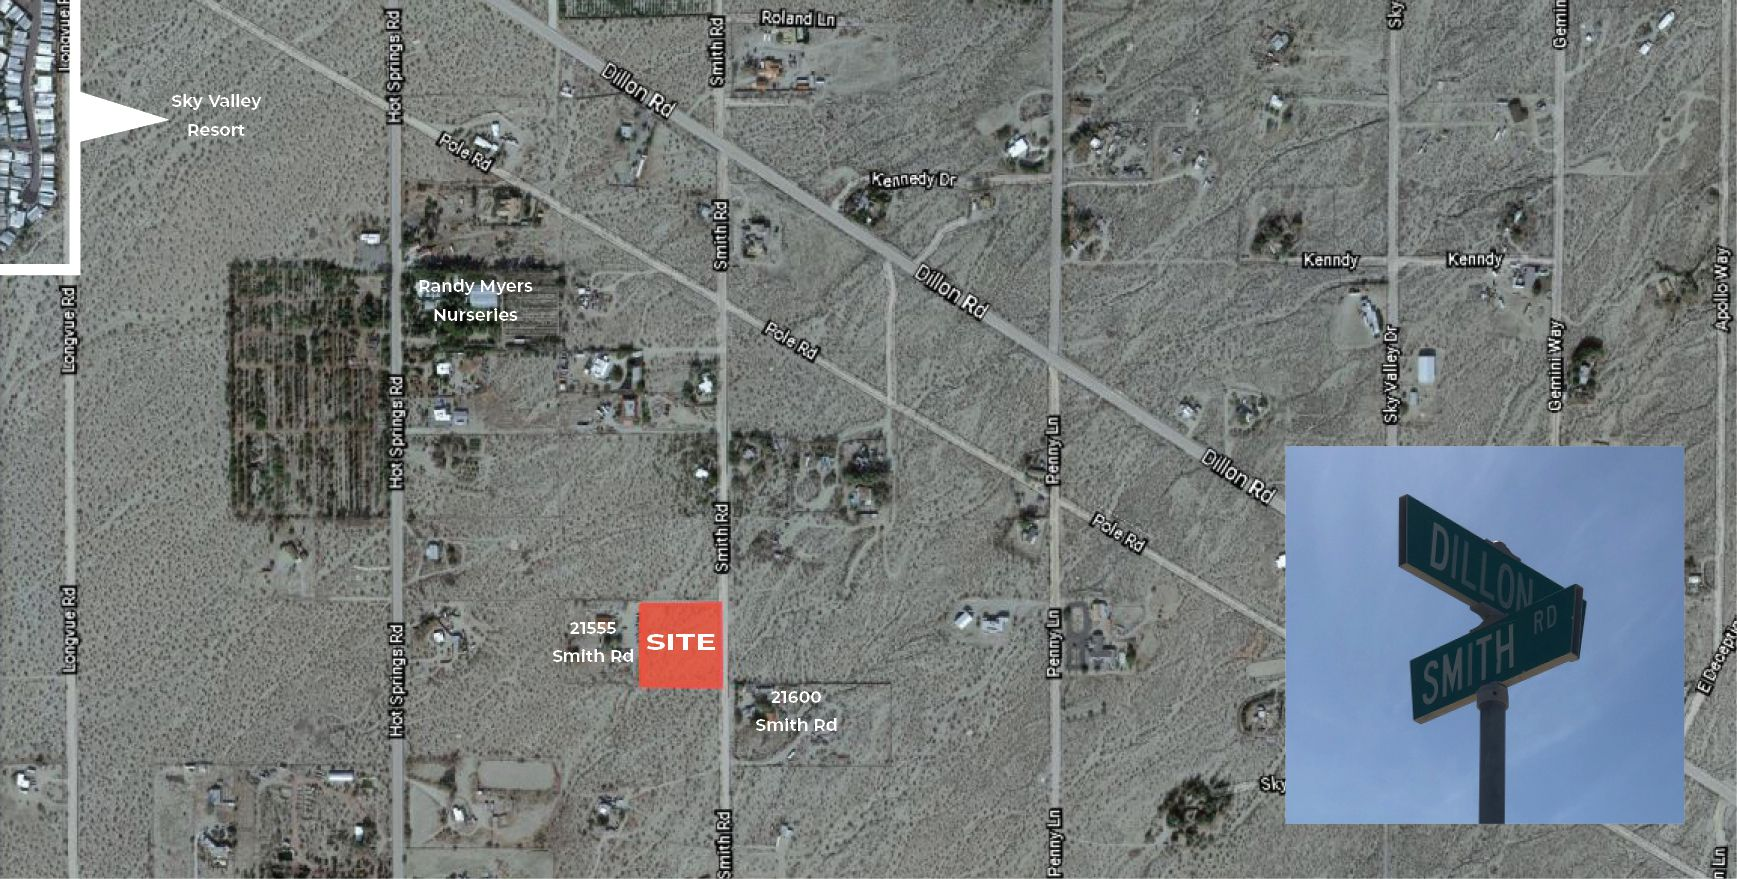 2.5 AC Smith Rd & Dillon Rd Sky Valley Zoomed Aerial